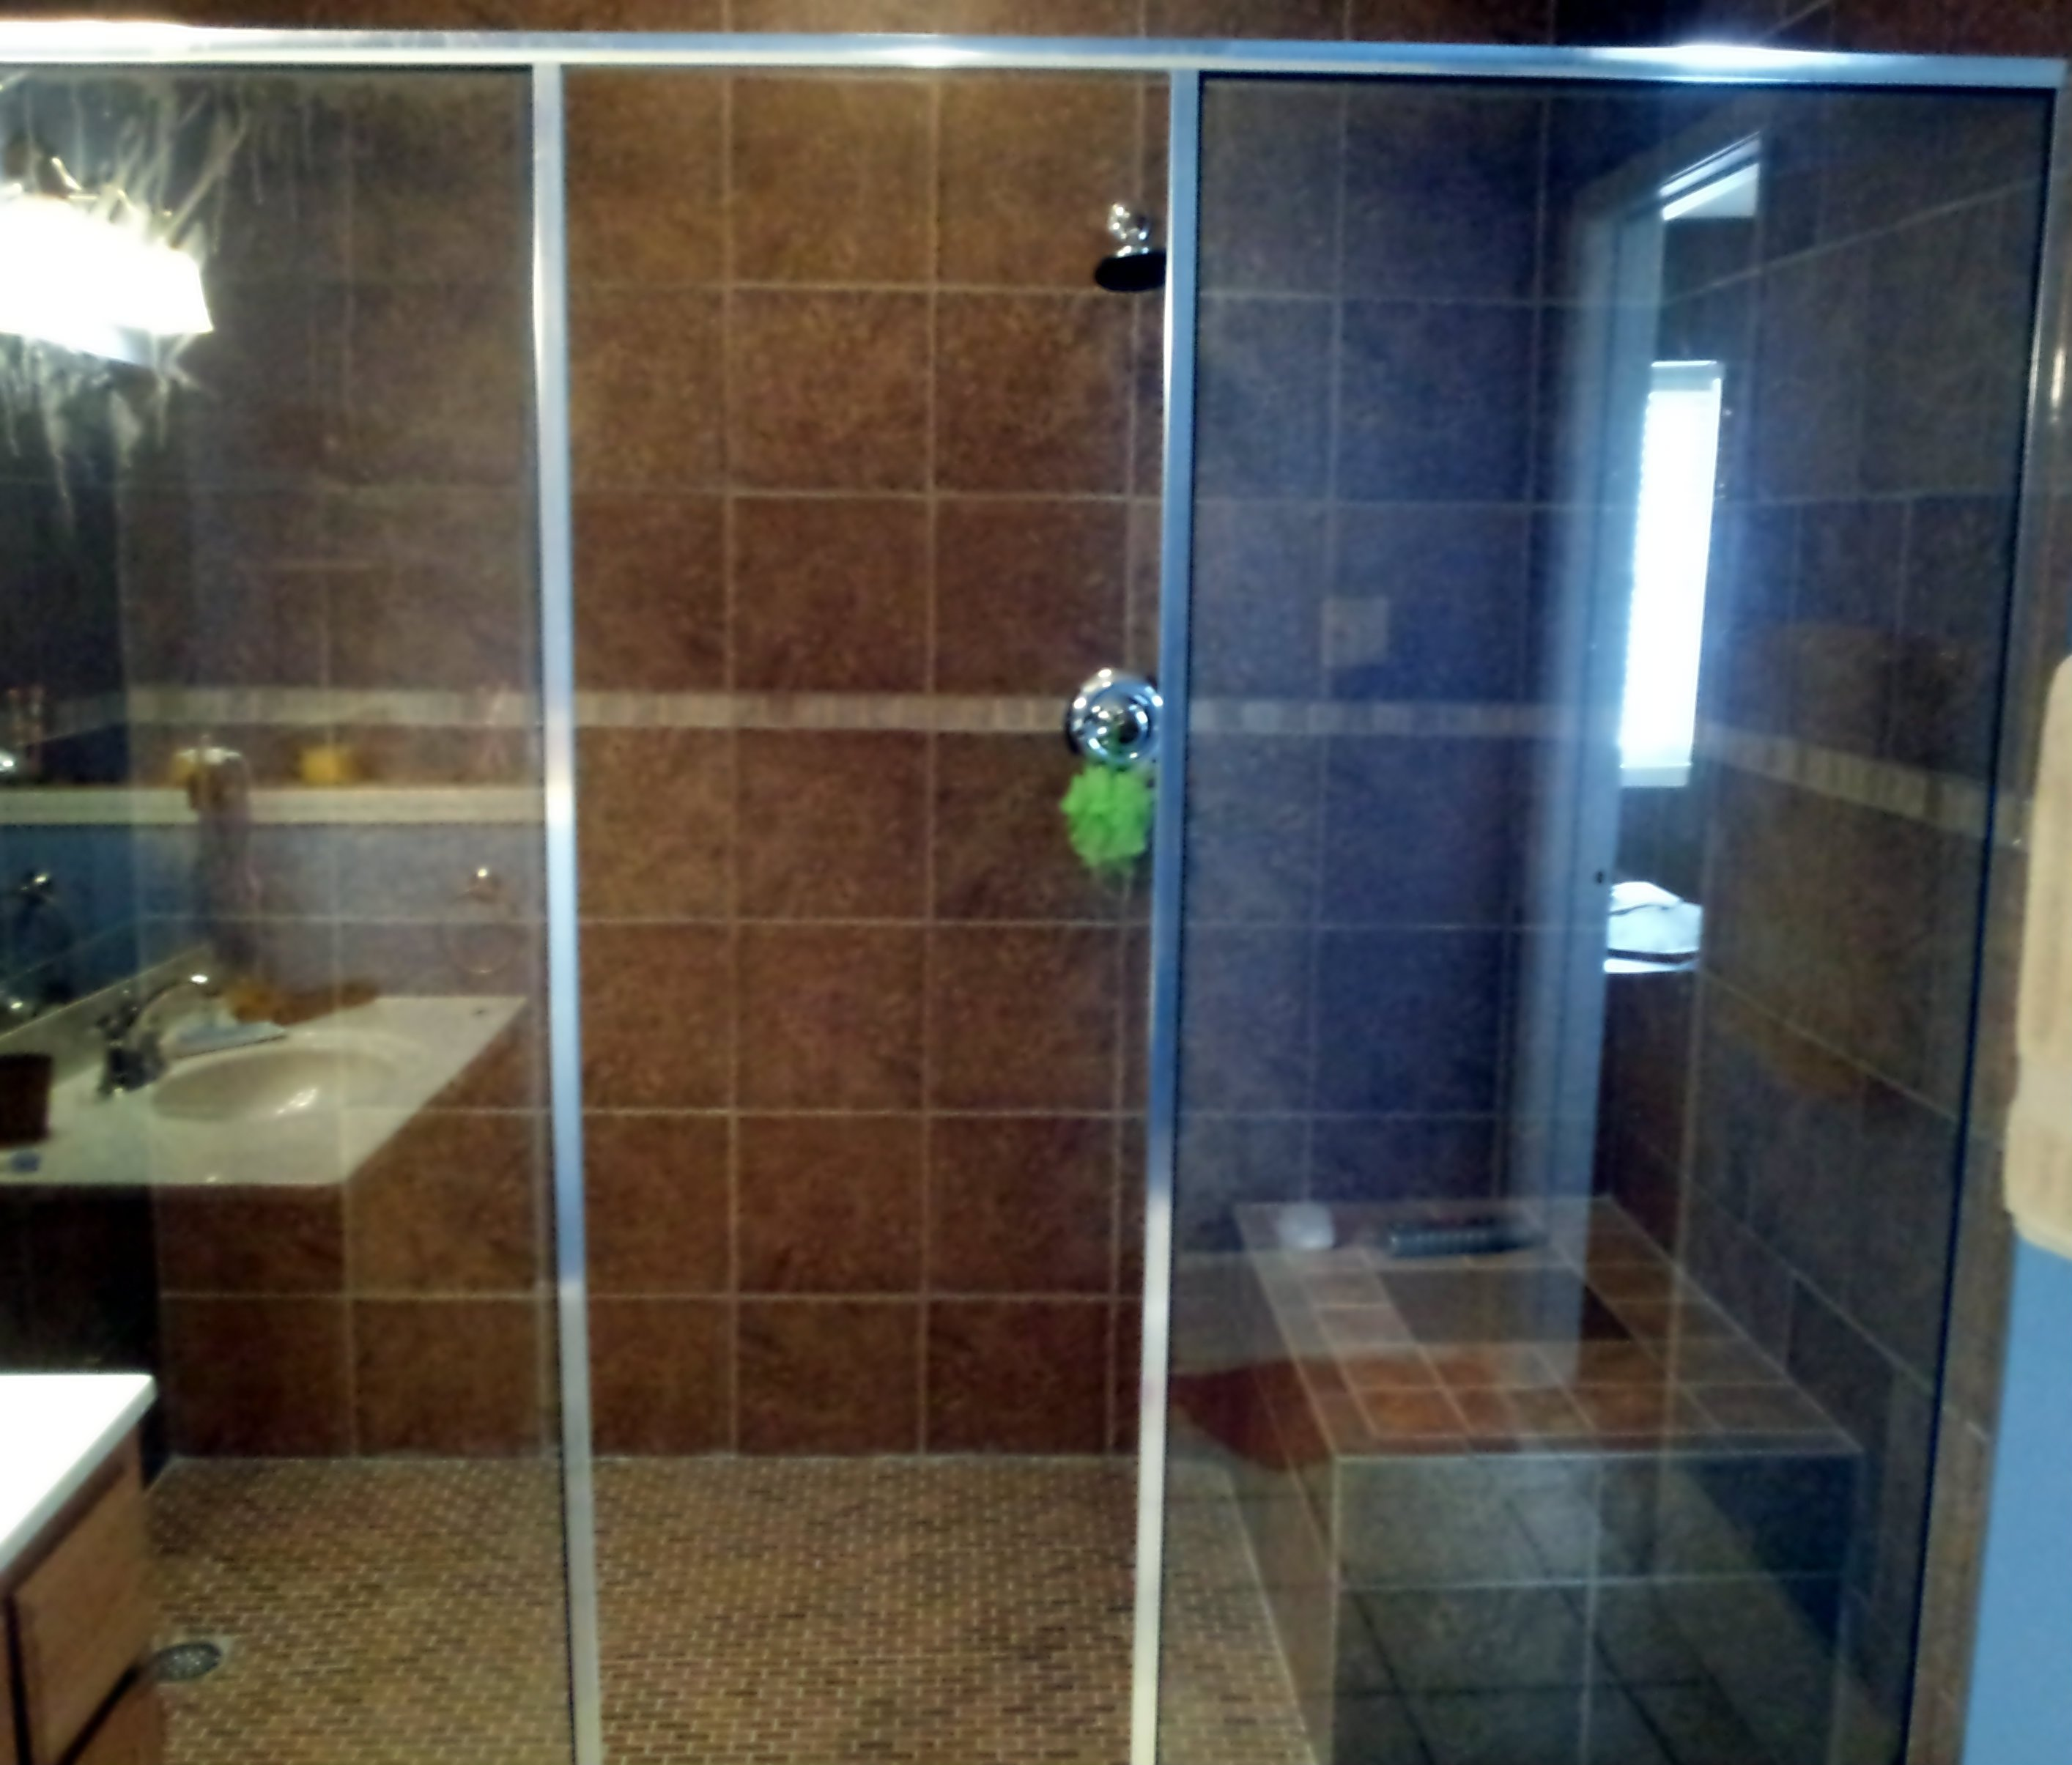 https://0201.nccdn.net/1_2/000/000/143/770/Shower-2-sidelites--no-door-silver.jpg